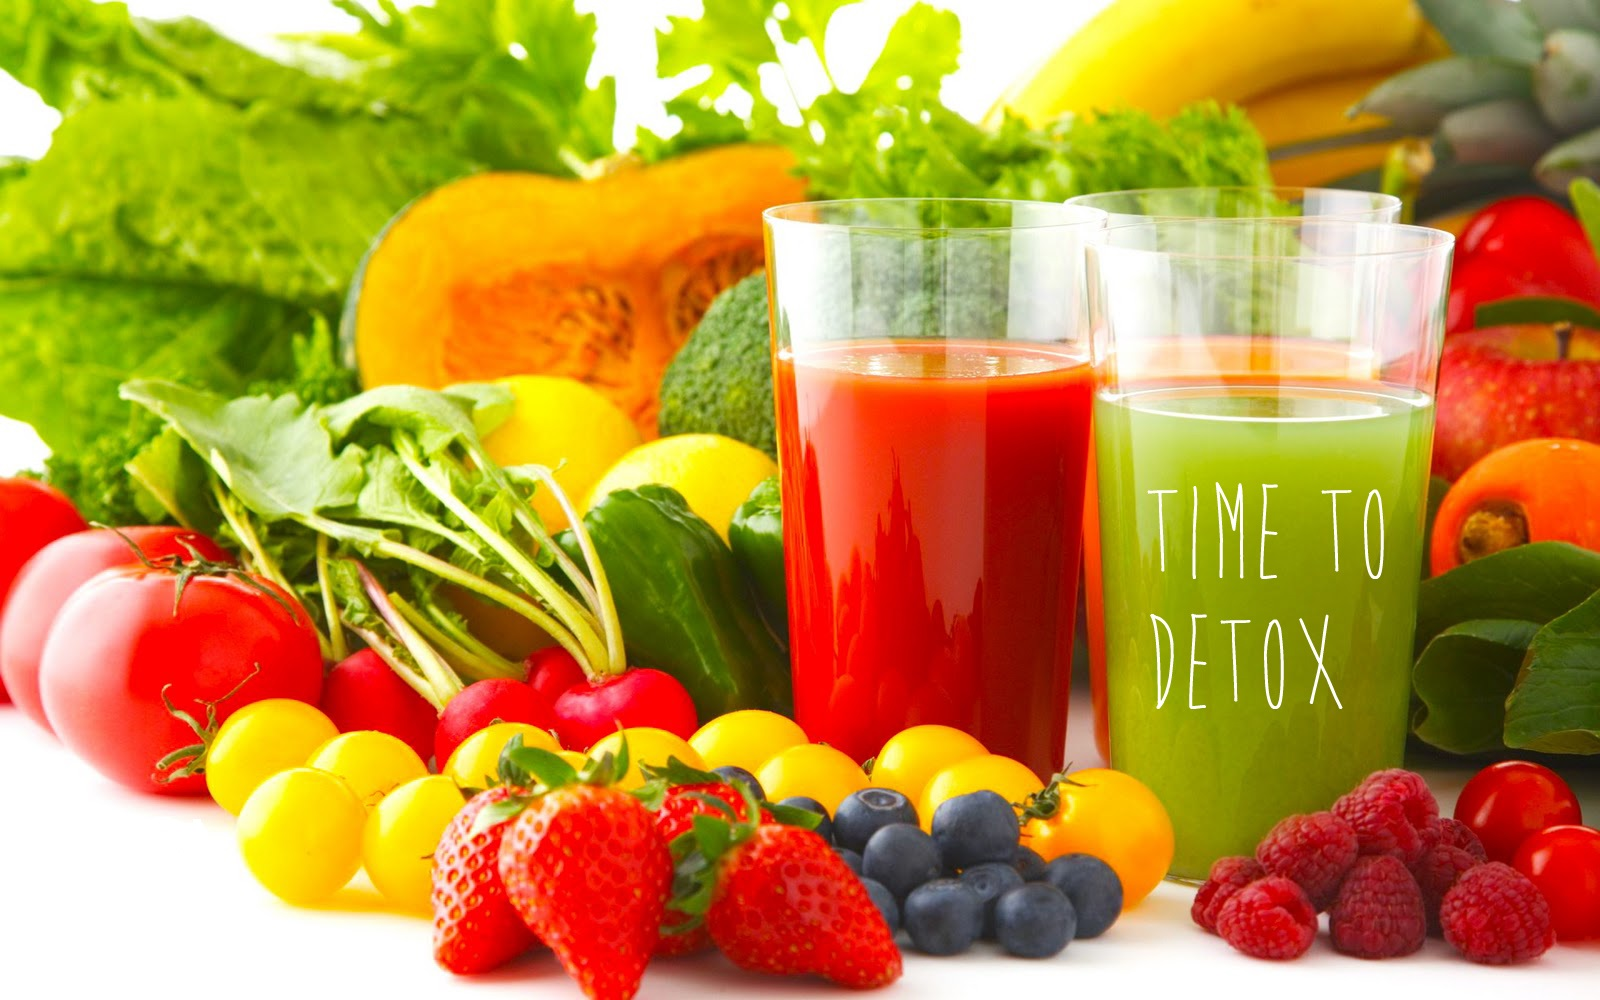 detox recipes for weight loss